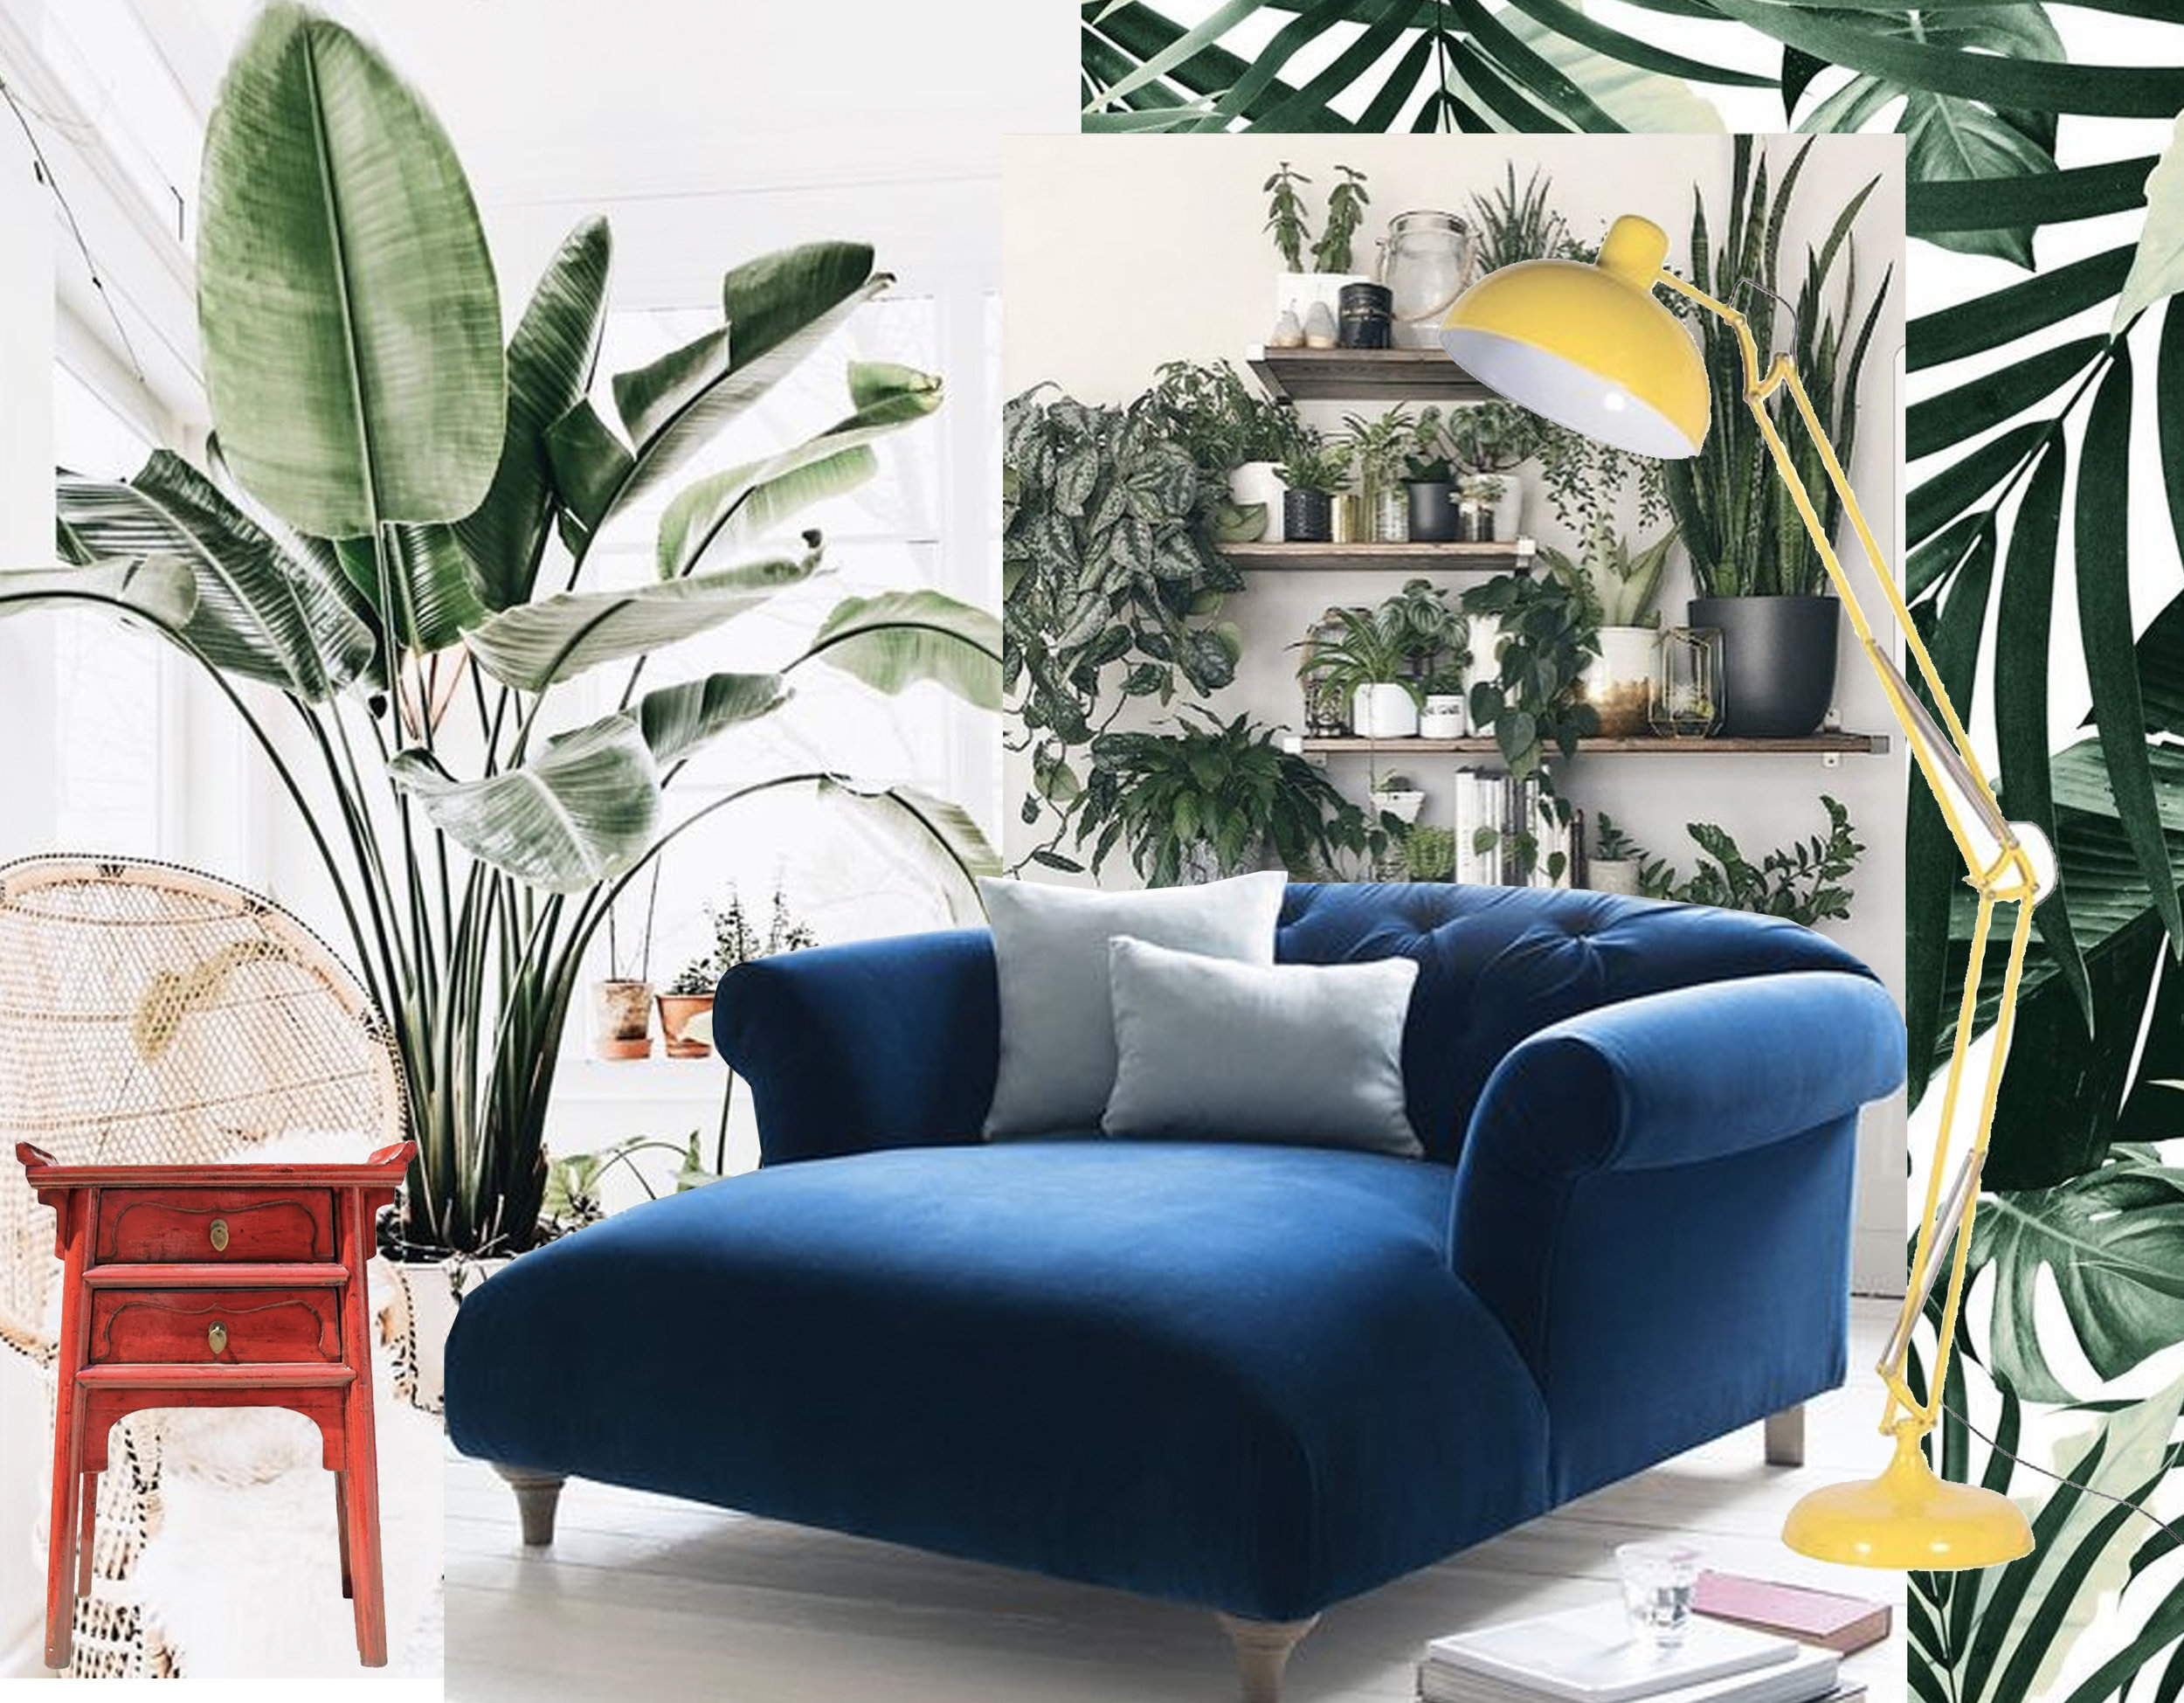 Dixie love seat  Loaf  - Tropical Jungle Leave pattern  Society 6  - Chinese side table  Chairish  - standing lamp  Funk Pop Art